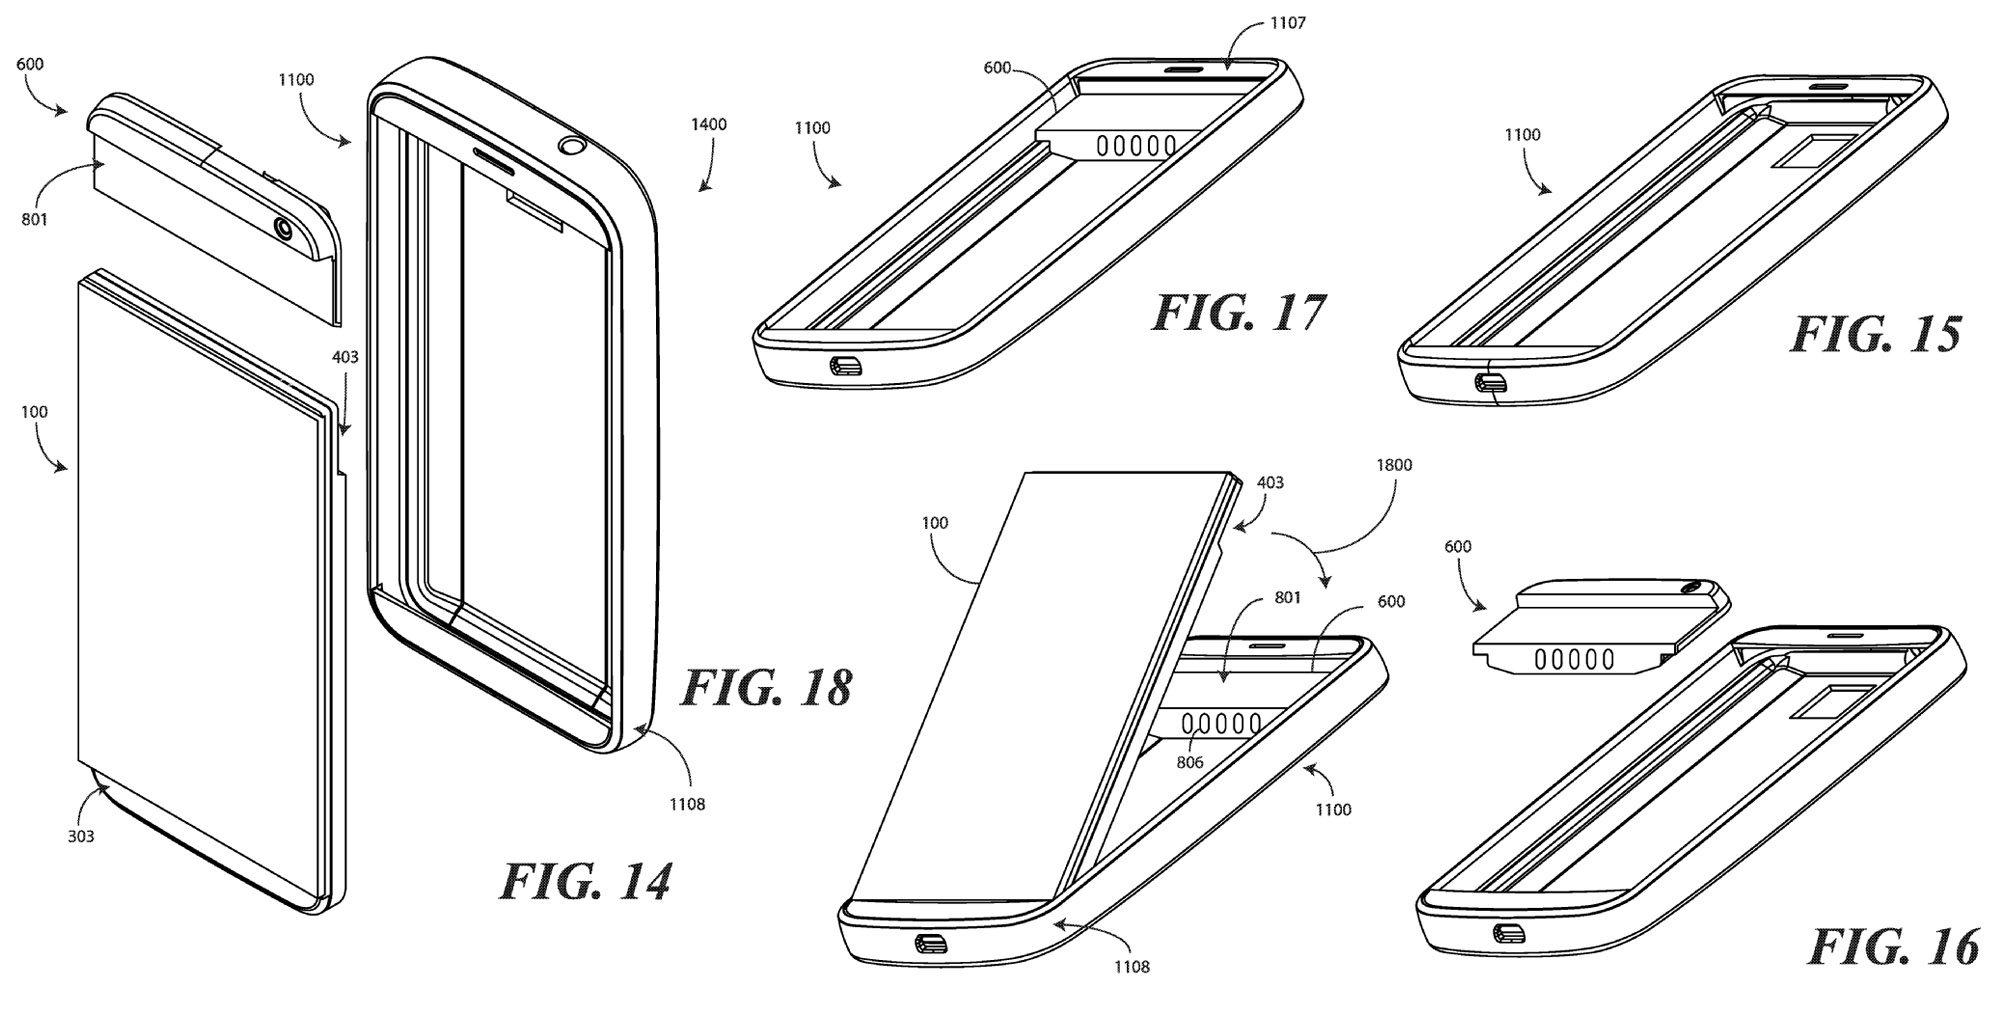 Patent Application Reveals Company Is Looking Into